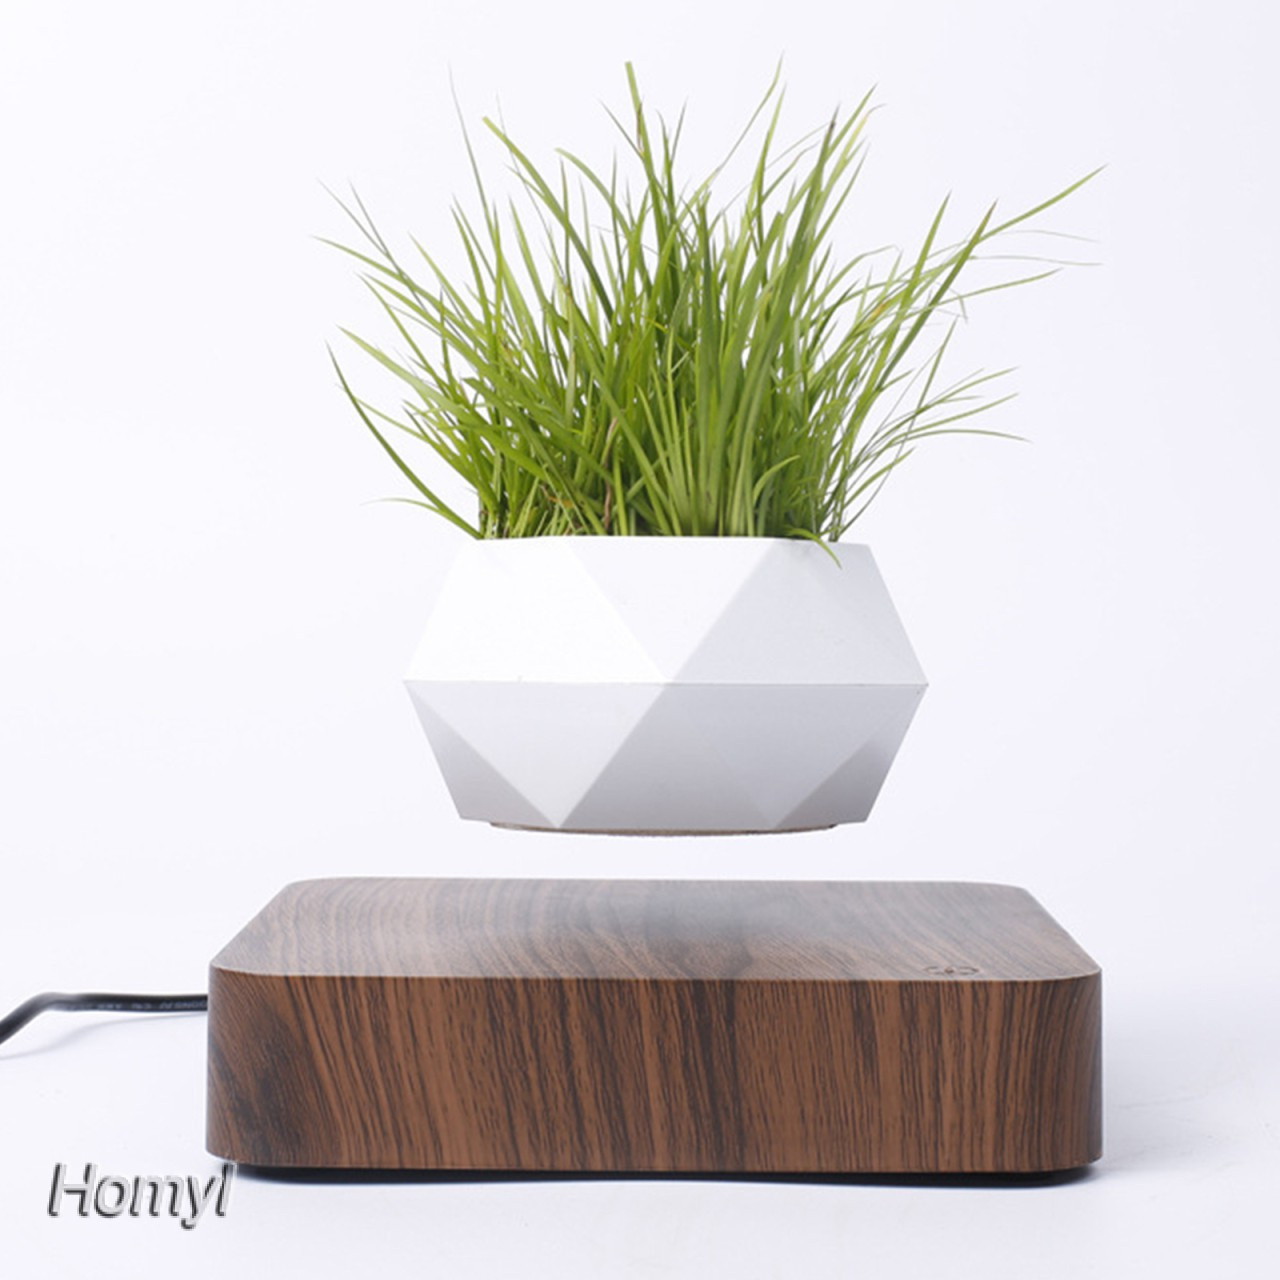 Homyl Levitating Air Plant Pot Bonsai Suspension Floating Flower Pot Planter Shopee Philippines